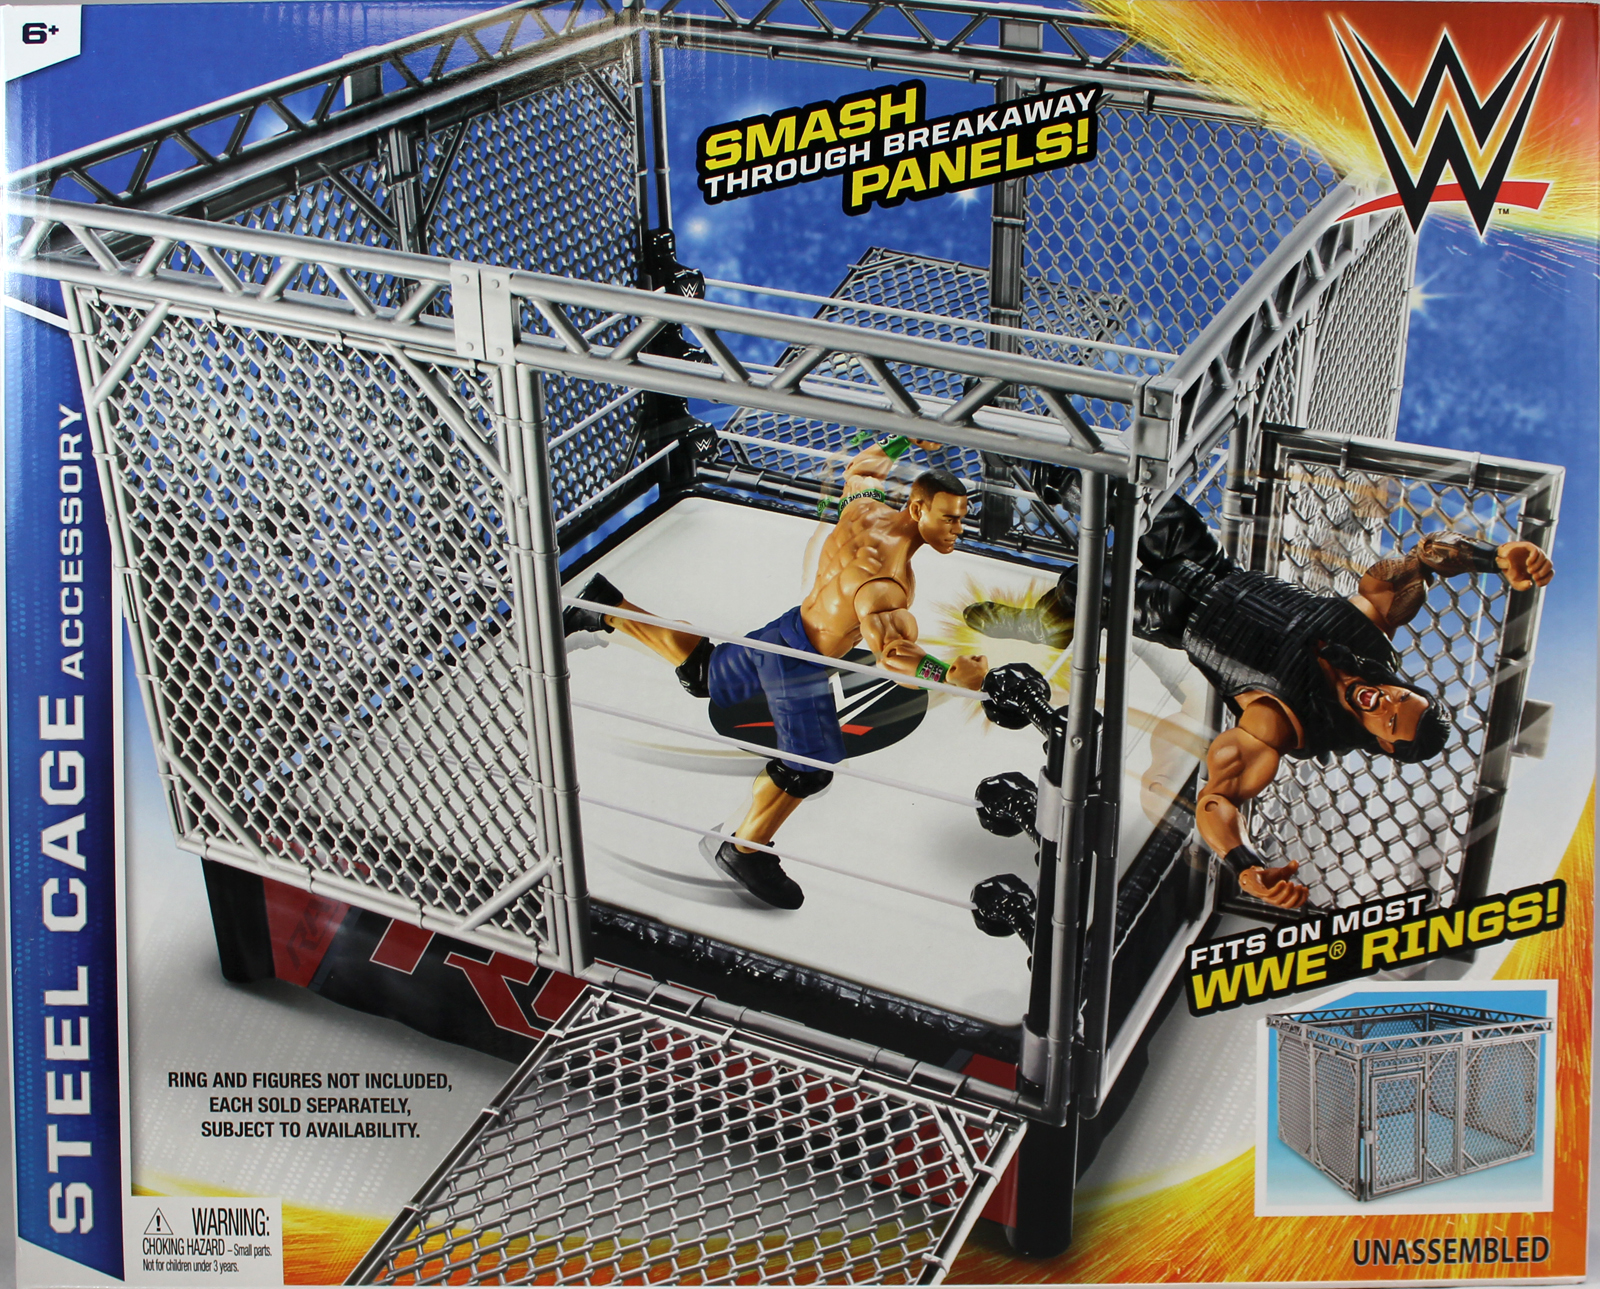 WWE Steel Cage Accessory Toy Wrestling Action Figure